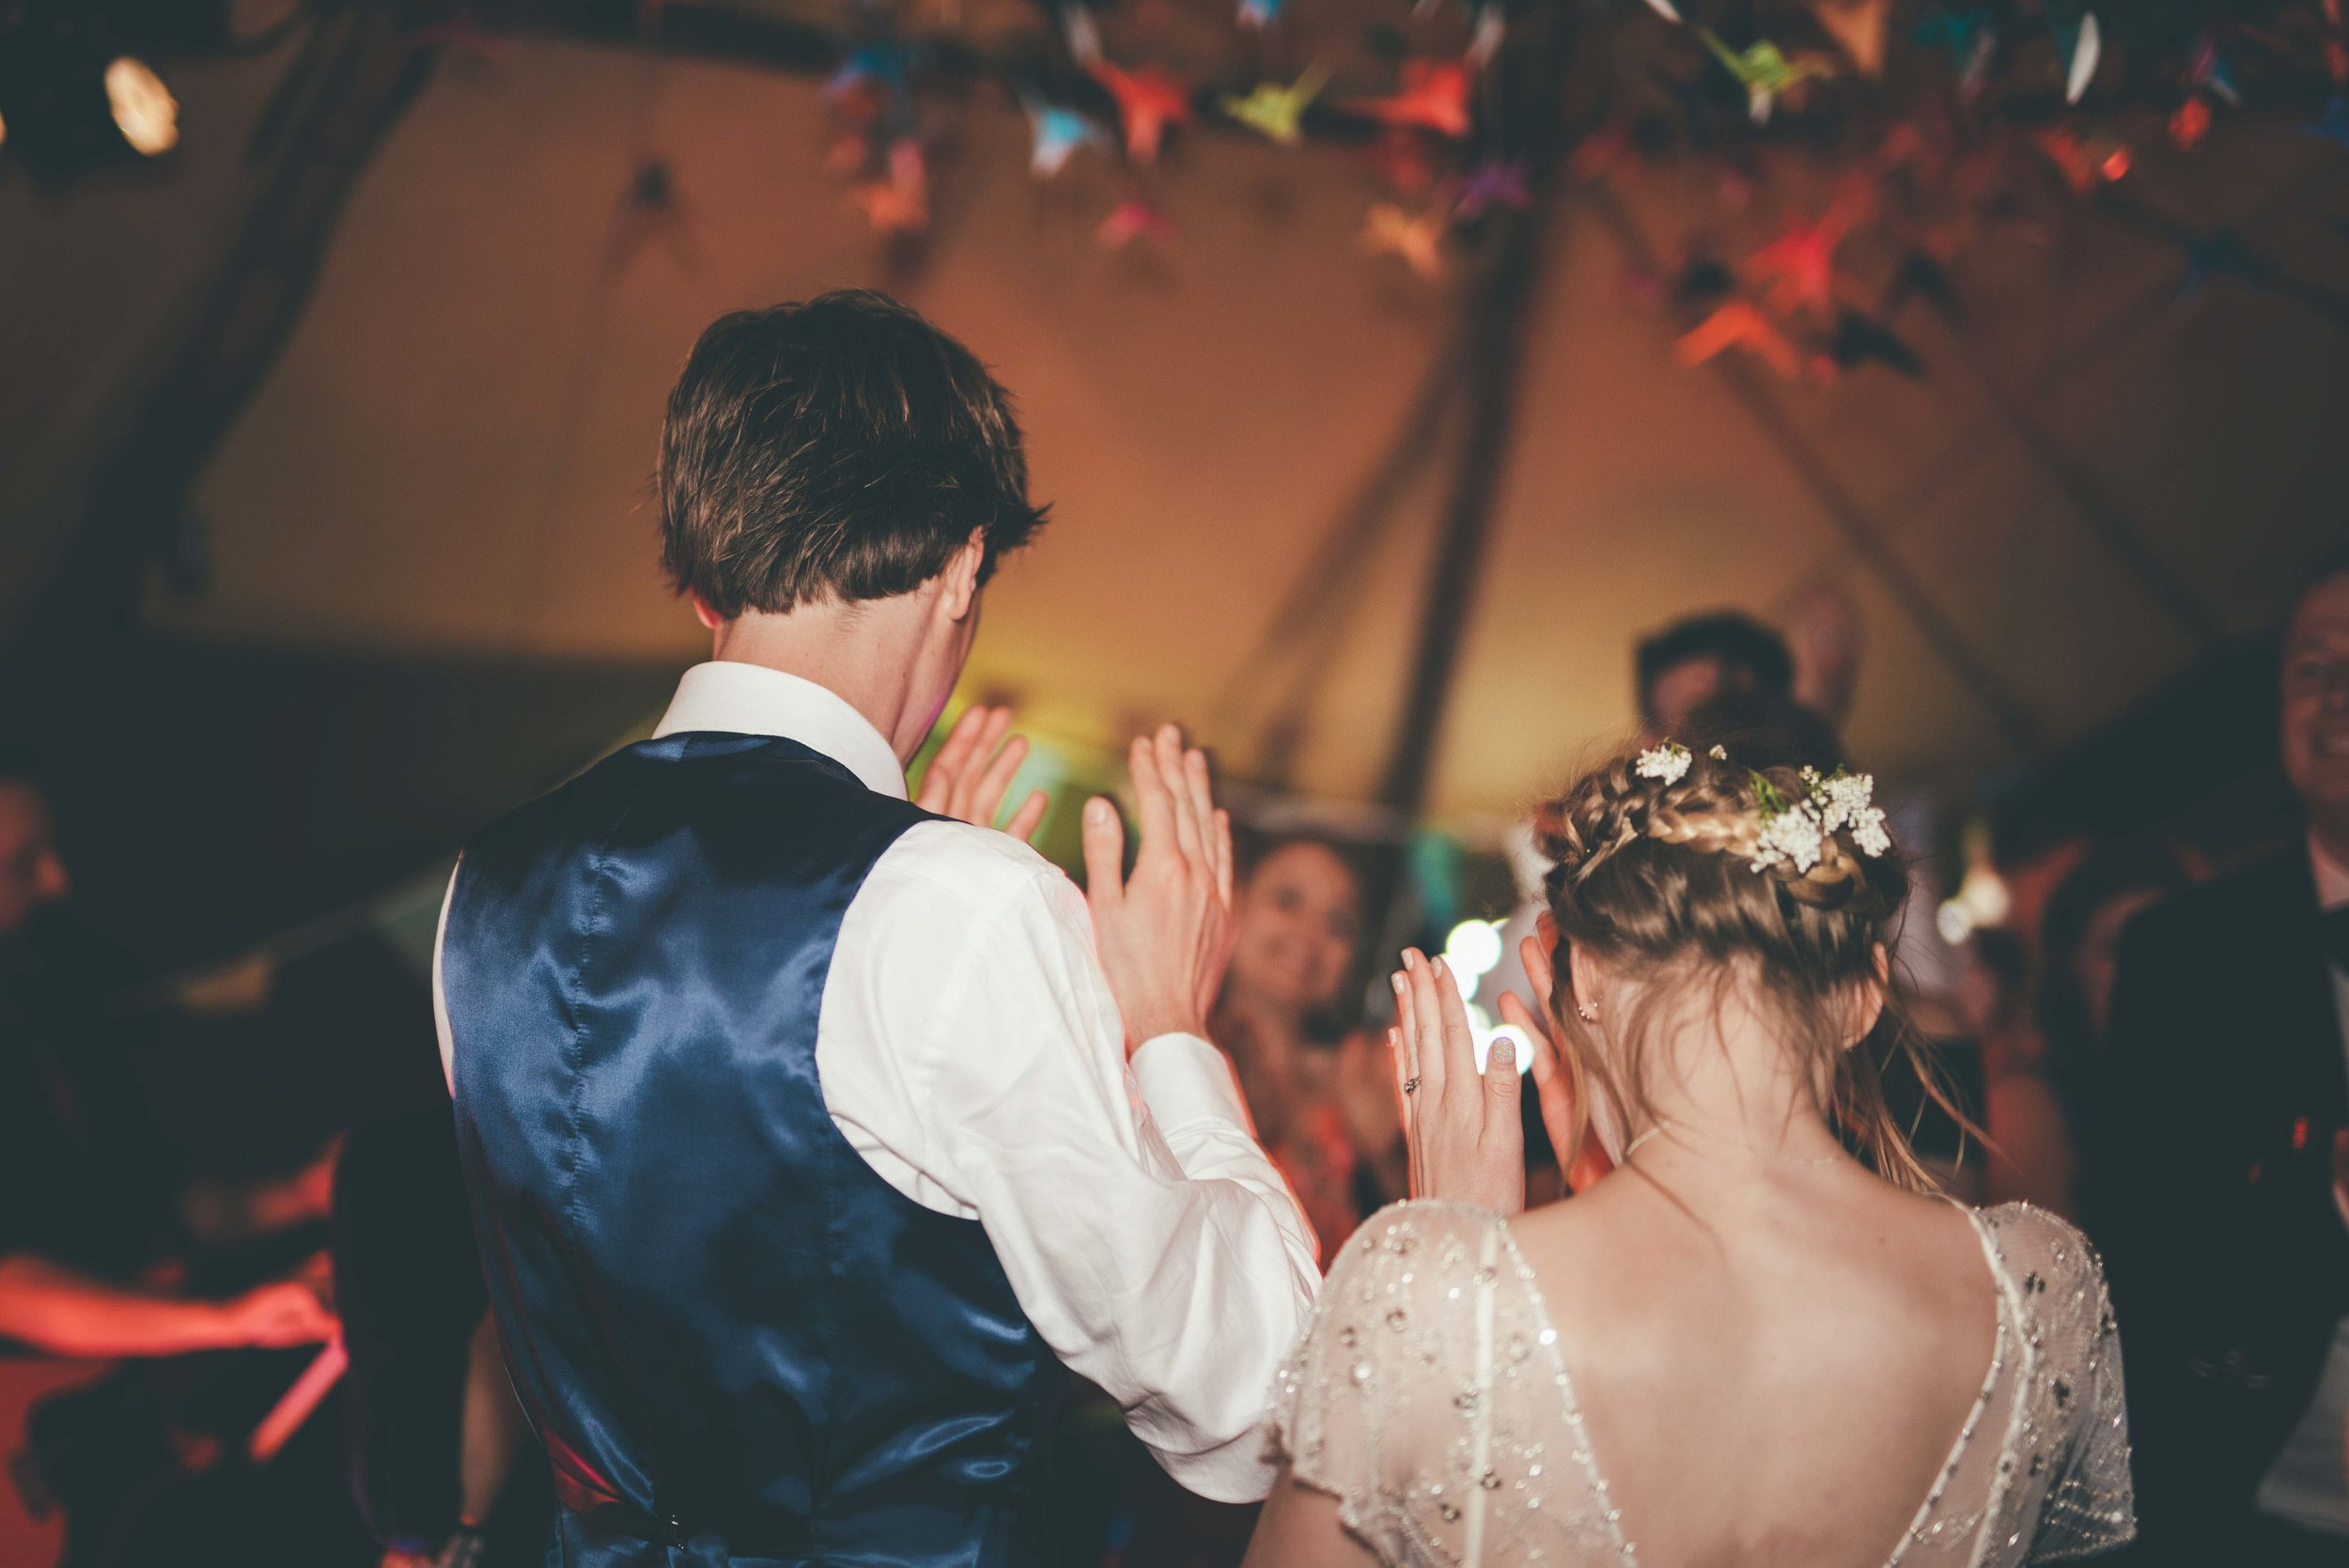 Bex + Adam - Chew Valley Tipi, Chew Magna